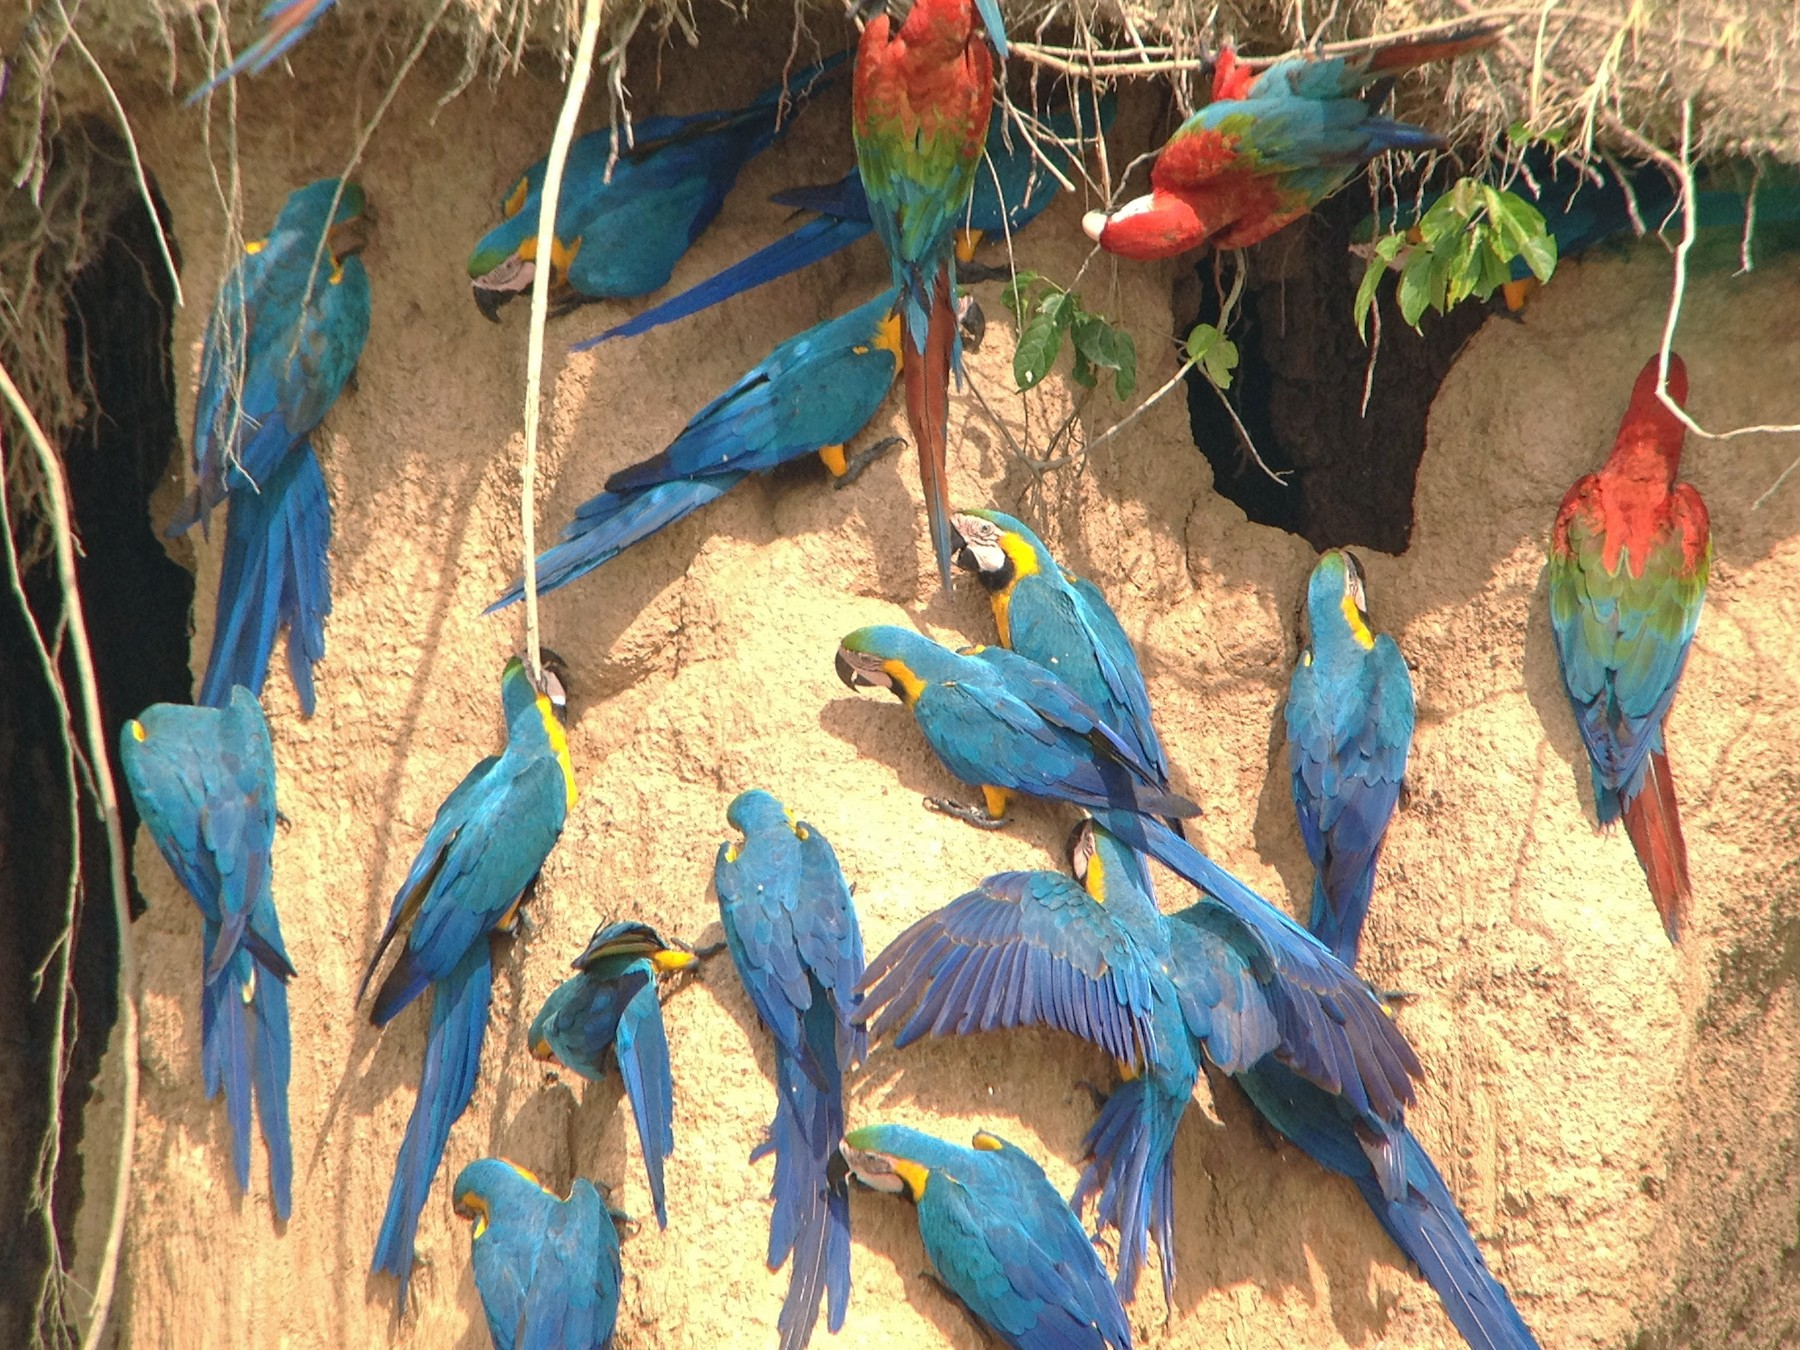 Blue-and-yellow Macaw - Carl Engstrom